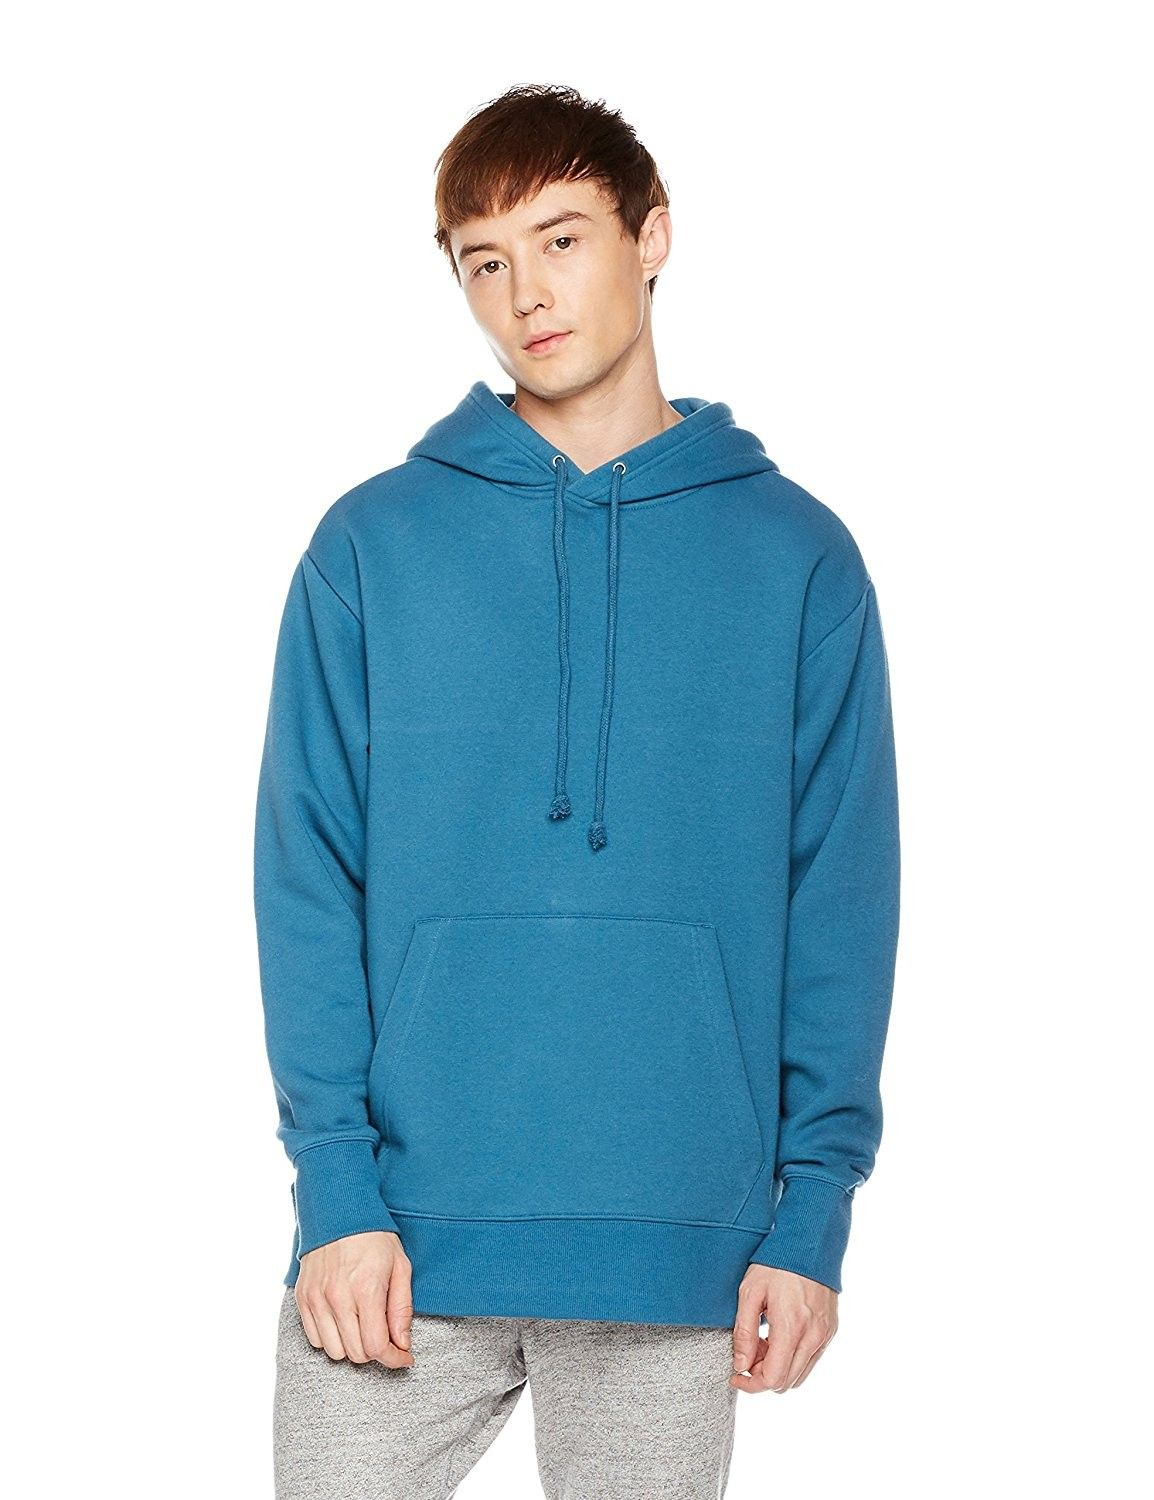 Men S Pullover Fleece Hoodie Blue Ashes Cc186ze8u6g Mens Fashion Sweaters Mens Outfits Pullover Men [ 1500 x 1154 Pixel ]